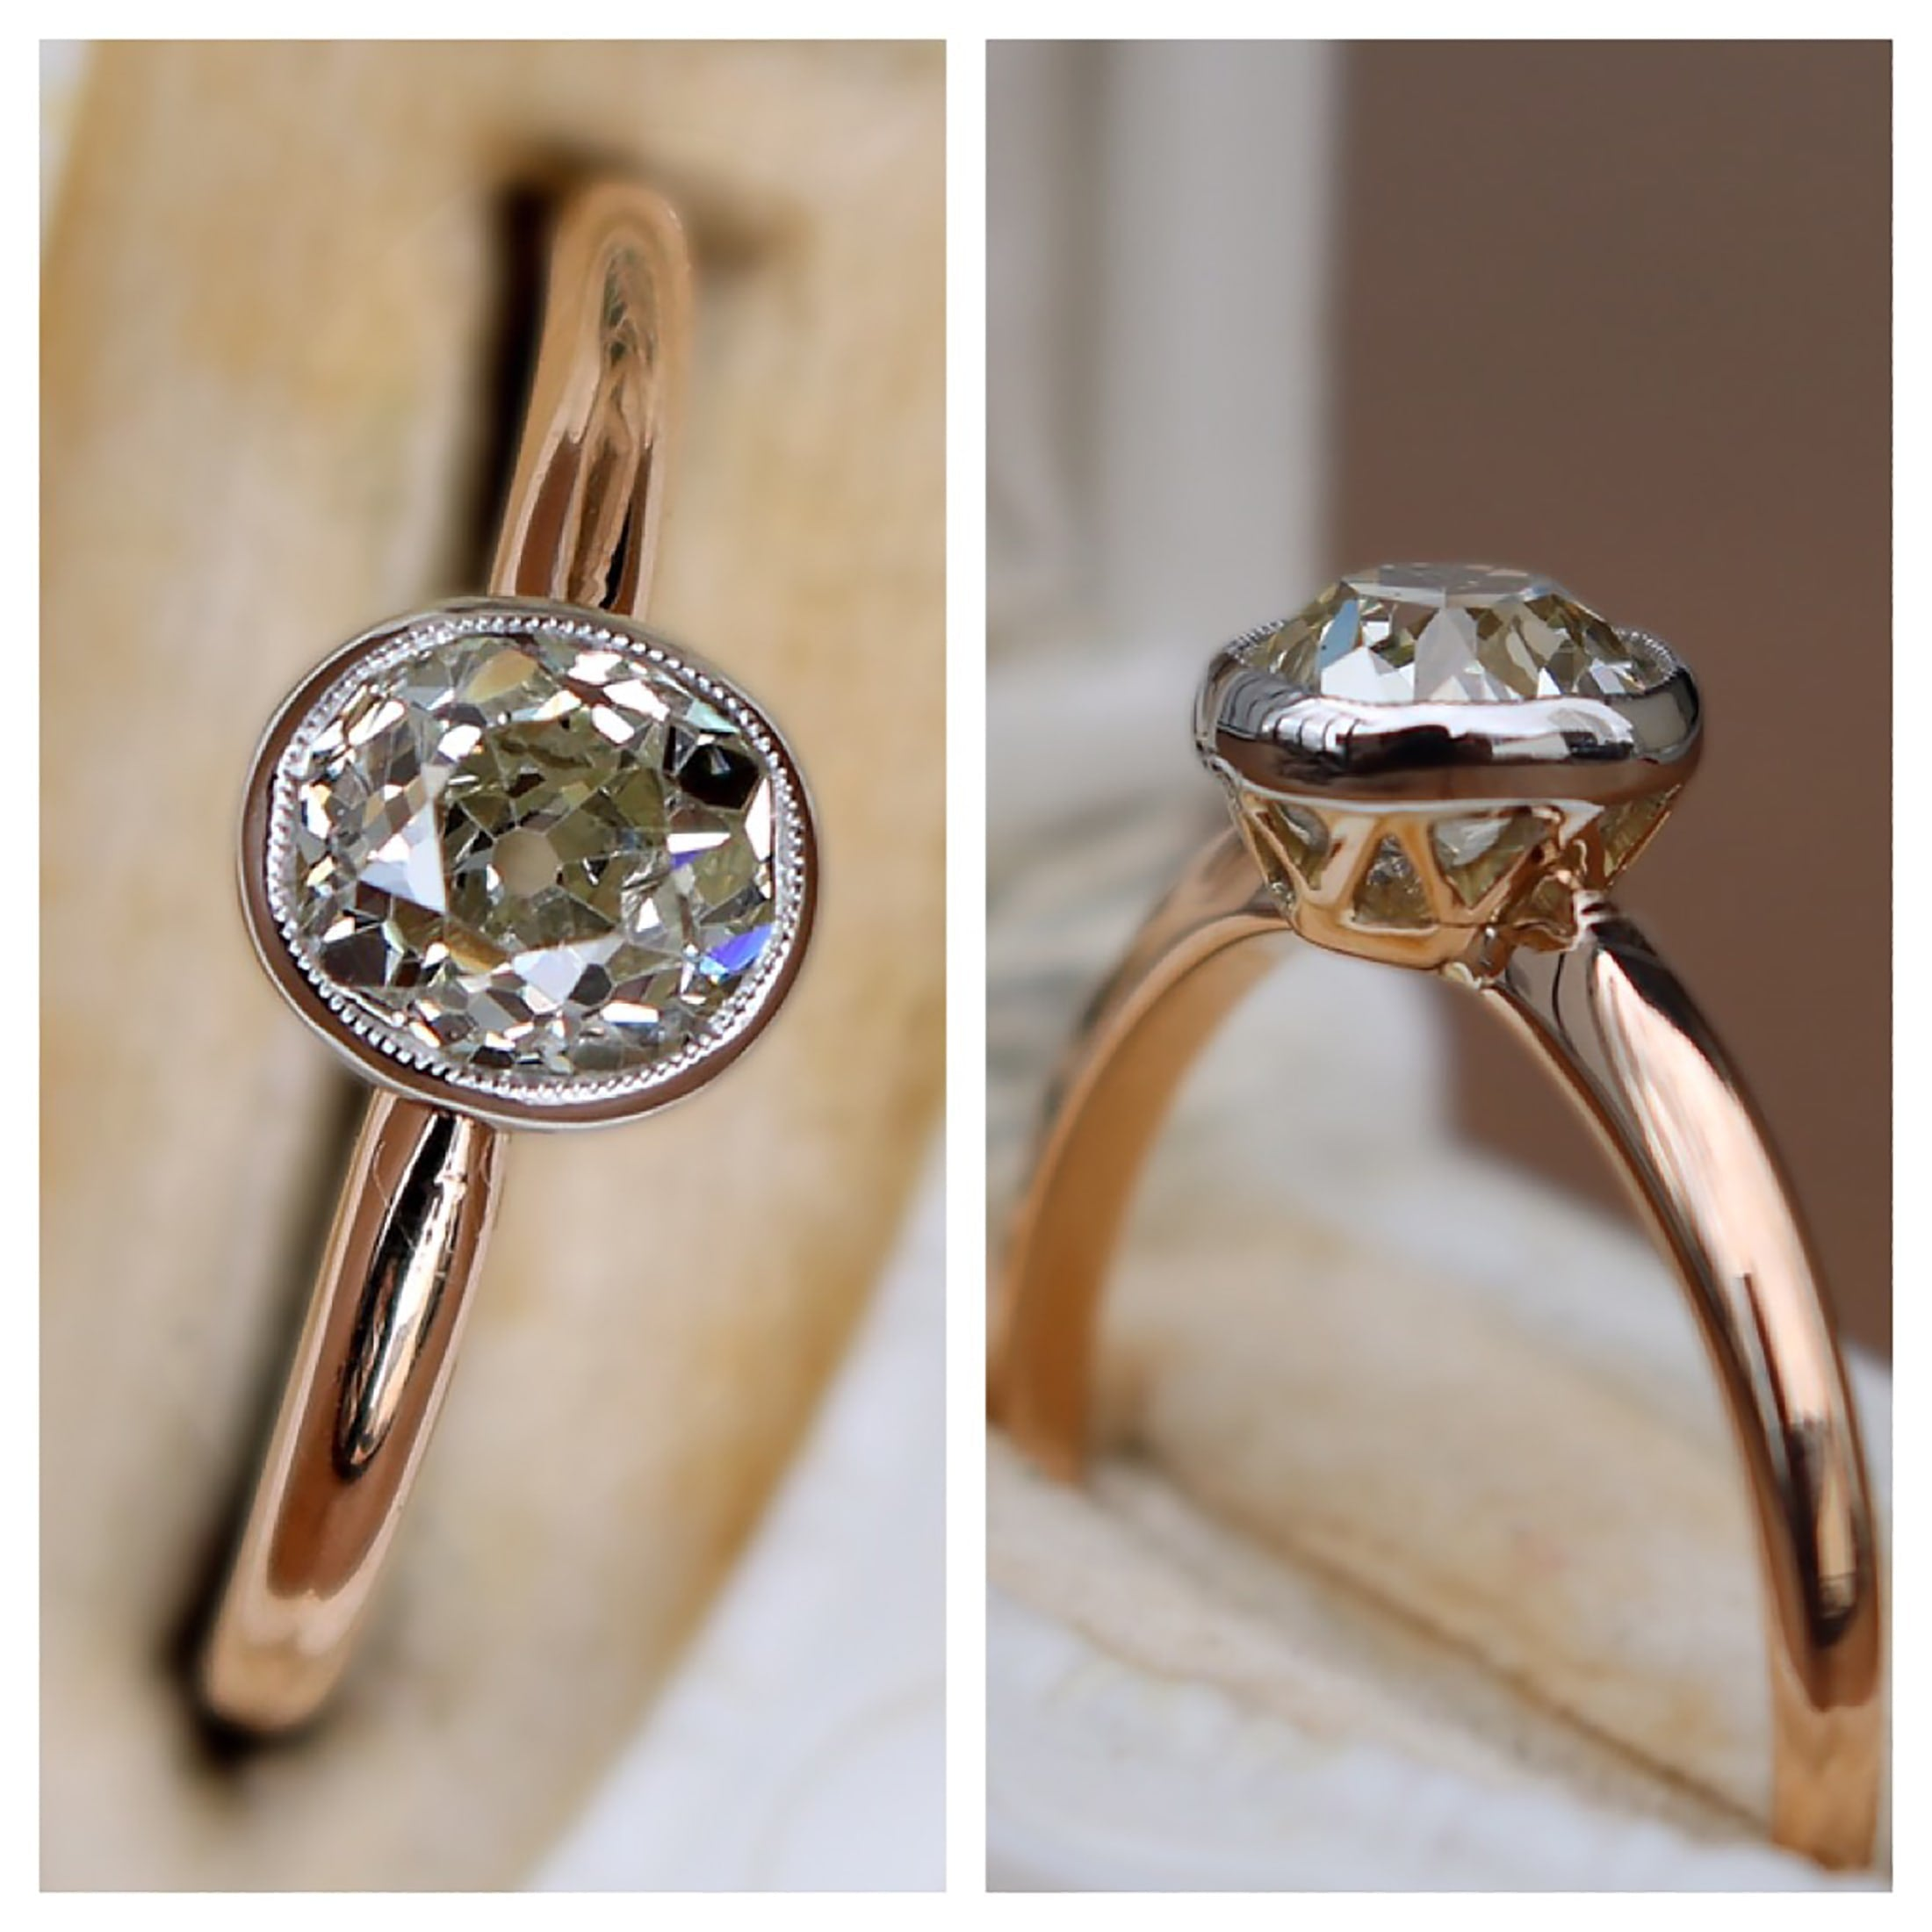 Edwardian oval european cut diamond ring